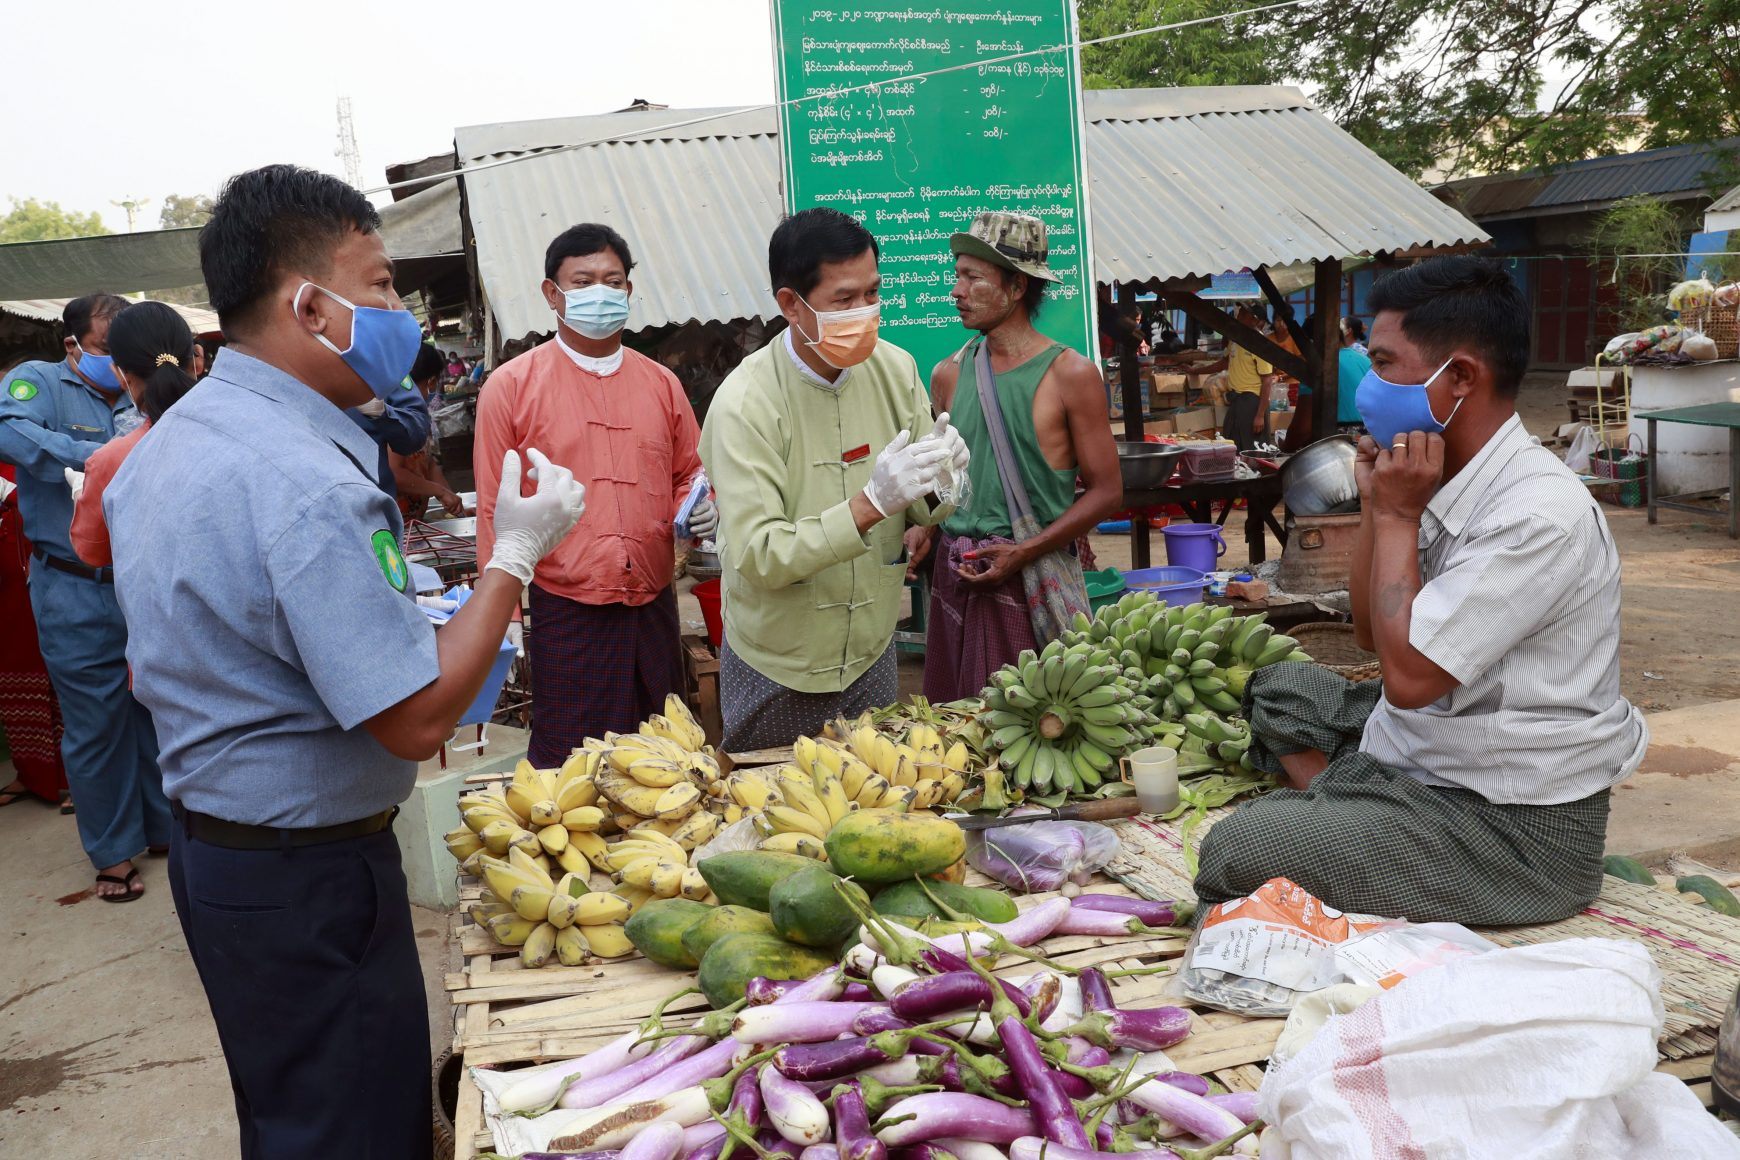 Government officials distribute face masks to vendors in Myanmar